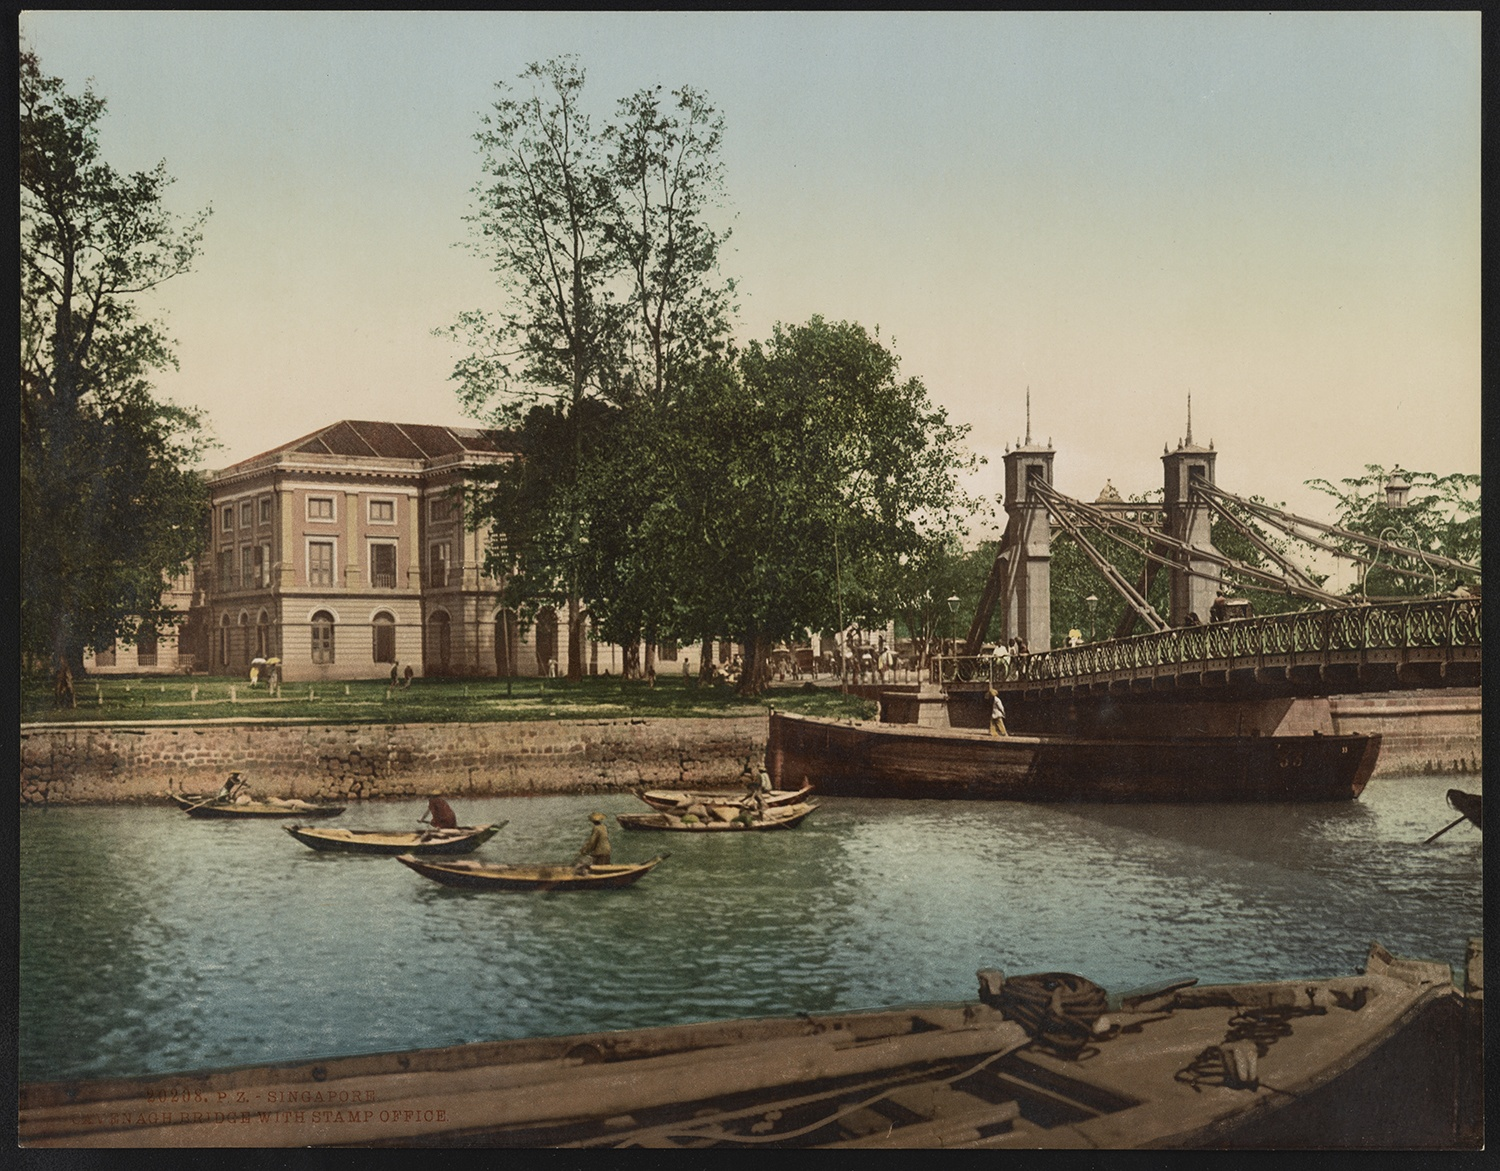 Cavenagh Bridge and the Government Offices, c. 1890. Courtesy of the Library of Congress.